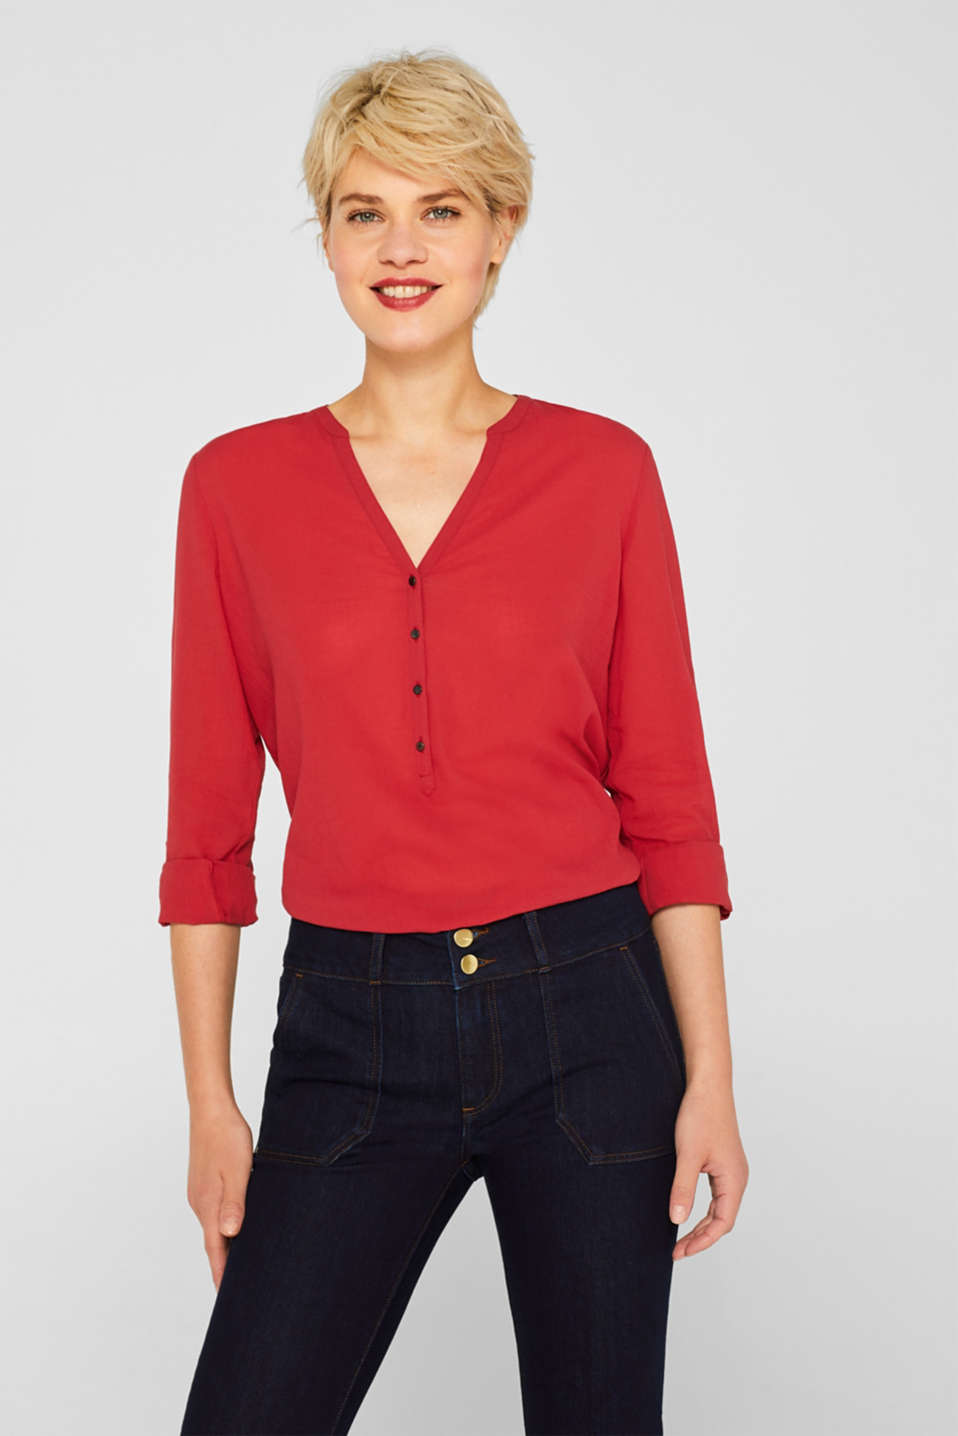 Esprit - Crinkle blouse with turn-up sleeves, 100% cotton